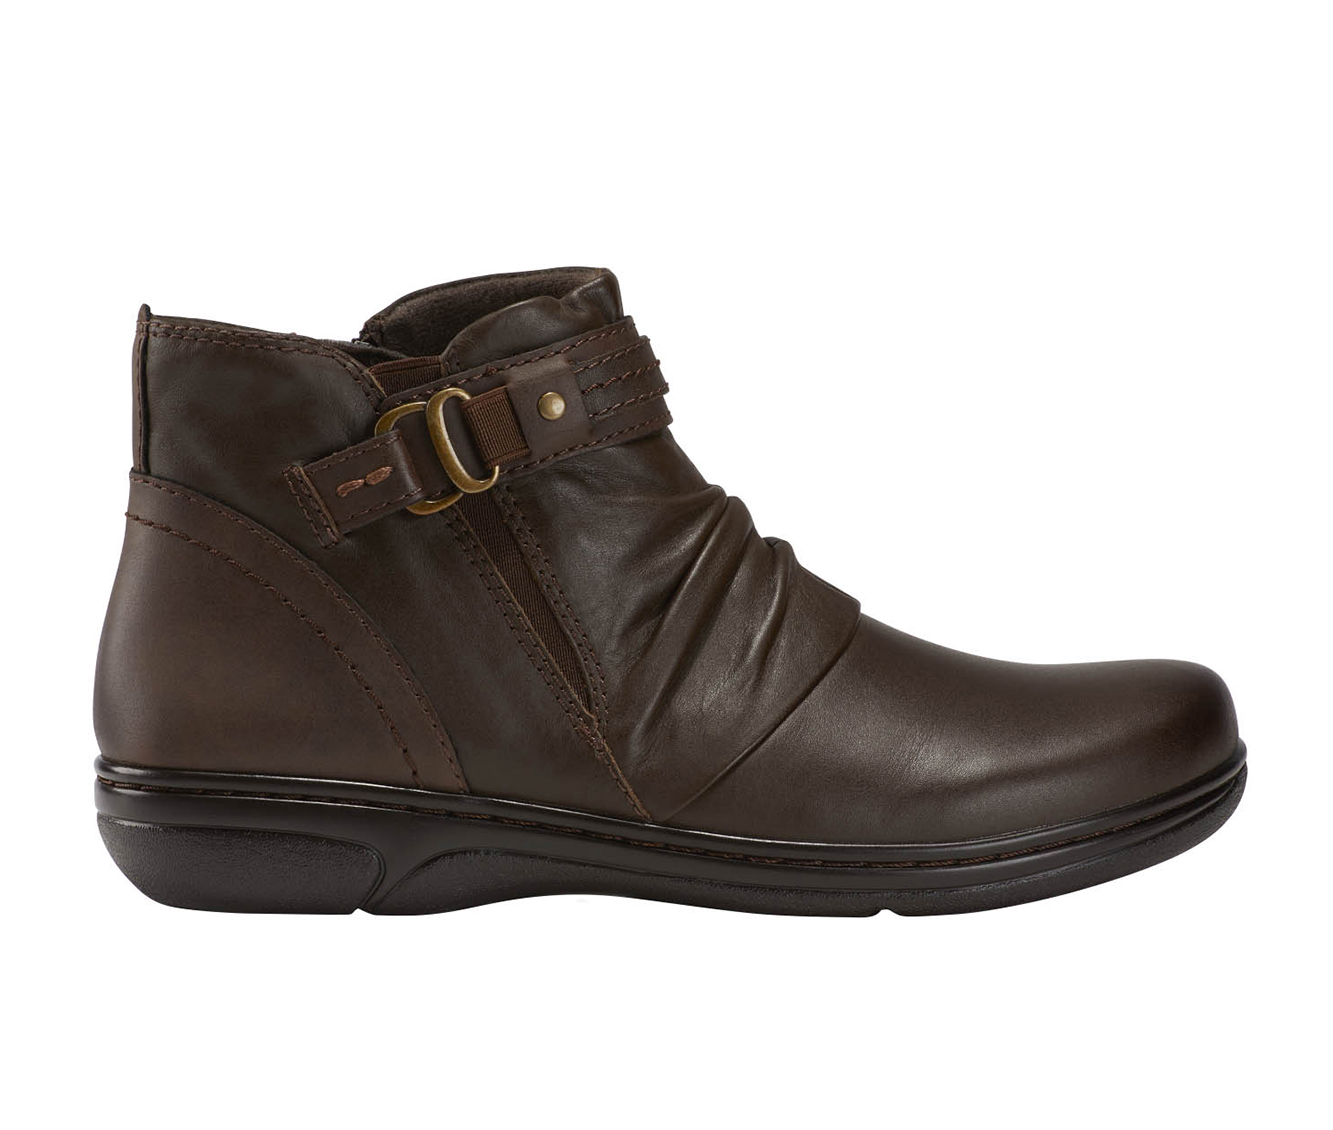 Earth Origins Glendale Gamila Women's Boot (Brown Leather)